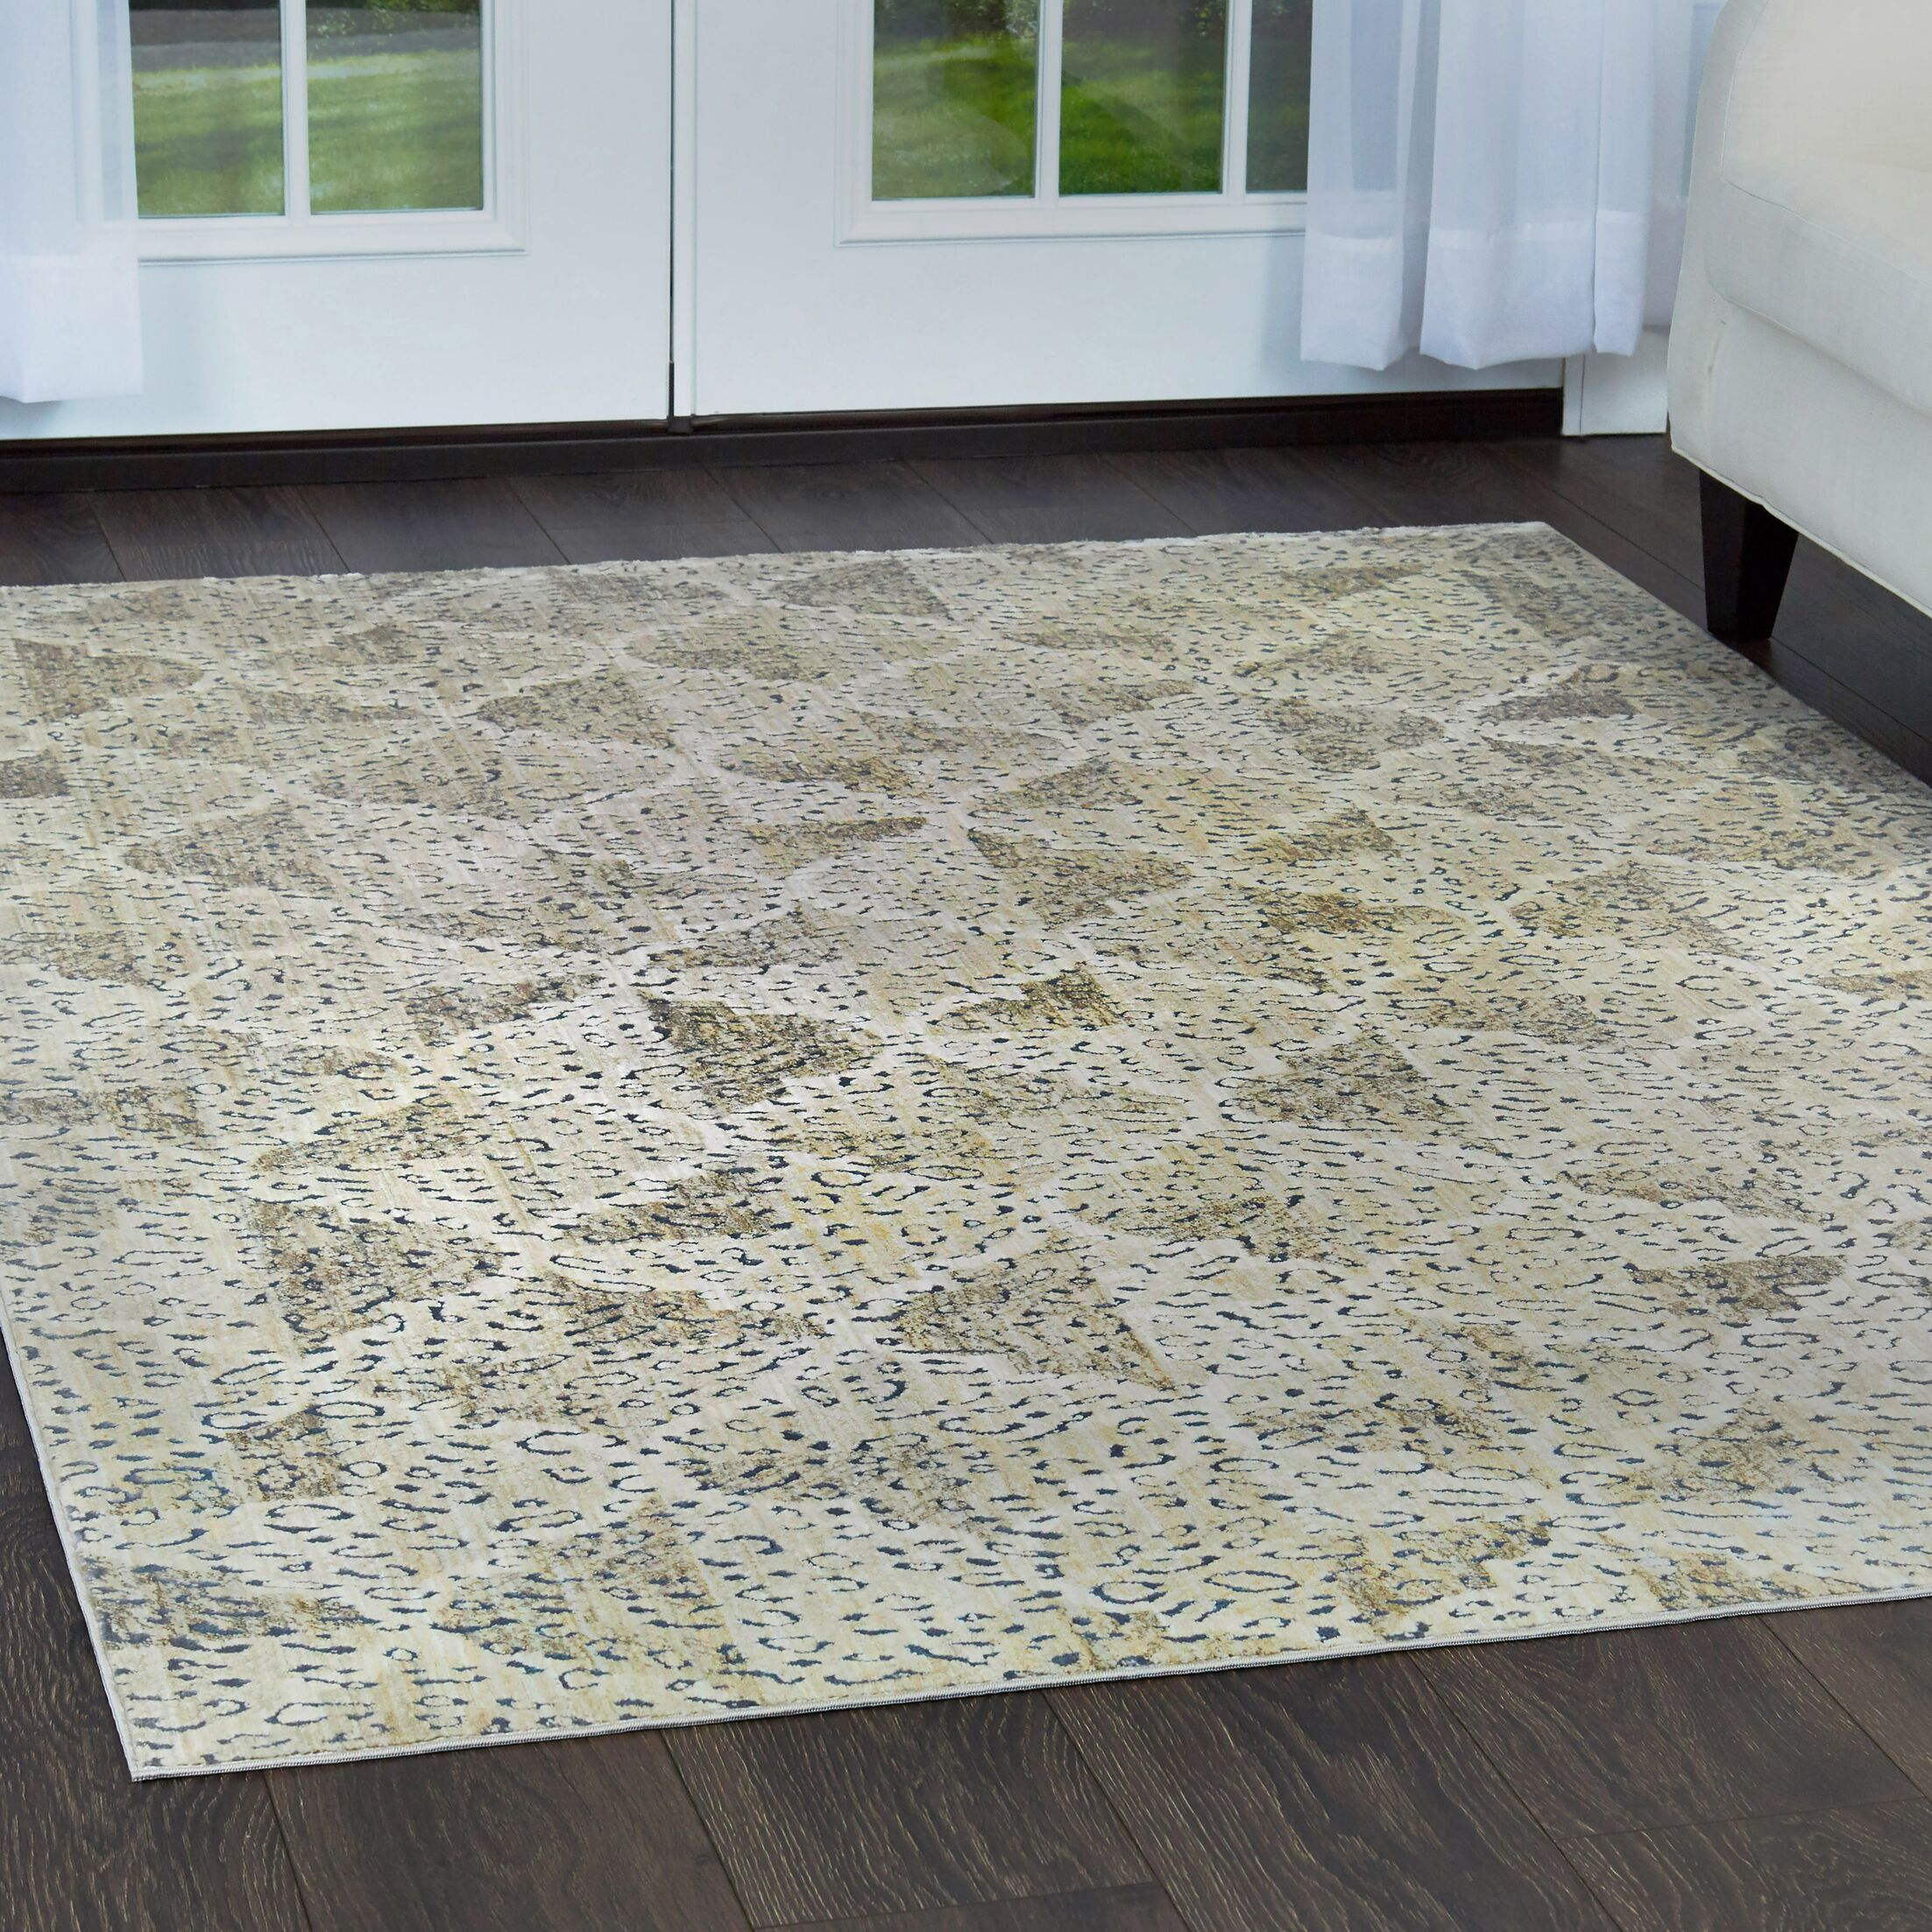 Nicole Miller Nagala Mahal Taupe Area Rug Rug Size: Rectangle 7'10